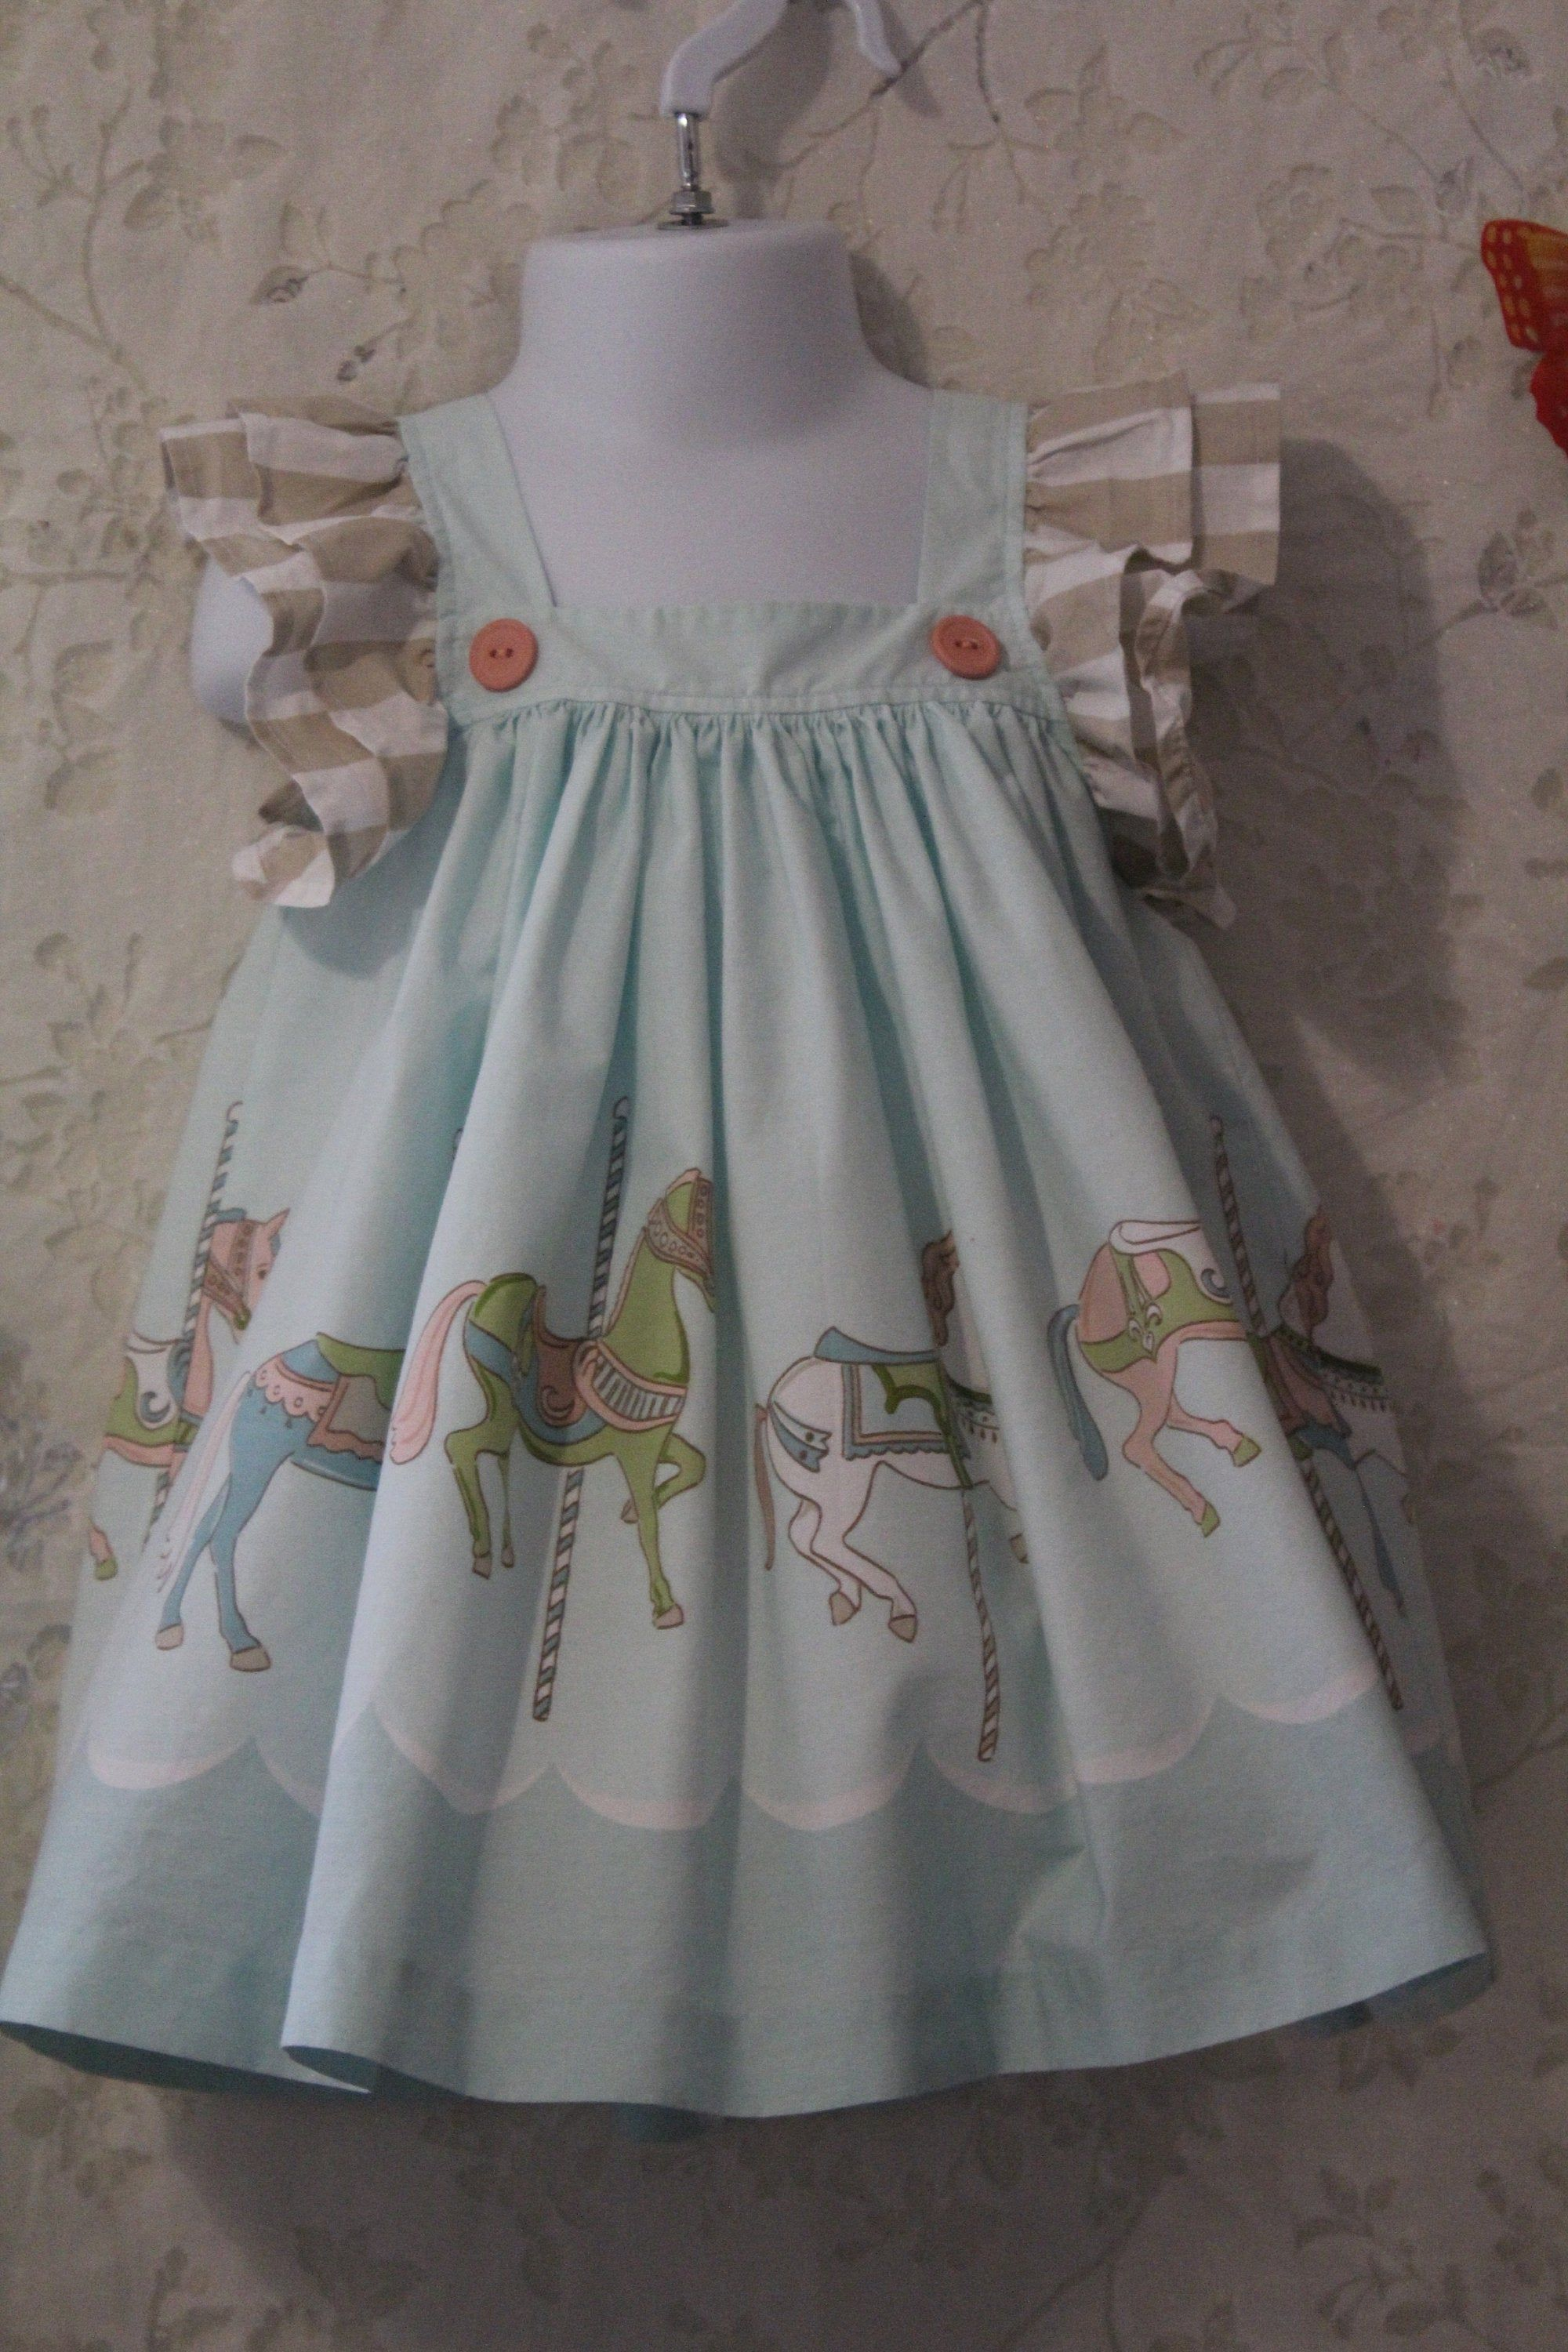 Handmade 2 3t Dress Toddlers Childrens Clothing Ready To Ship Etsy Toddler Dress Childrens Clothes 3t Dress [ 3000 x 2000 Pixel ]